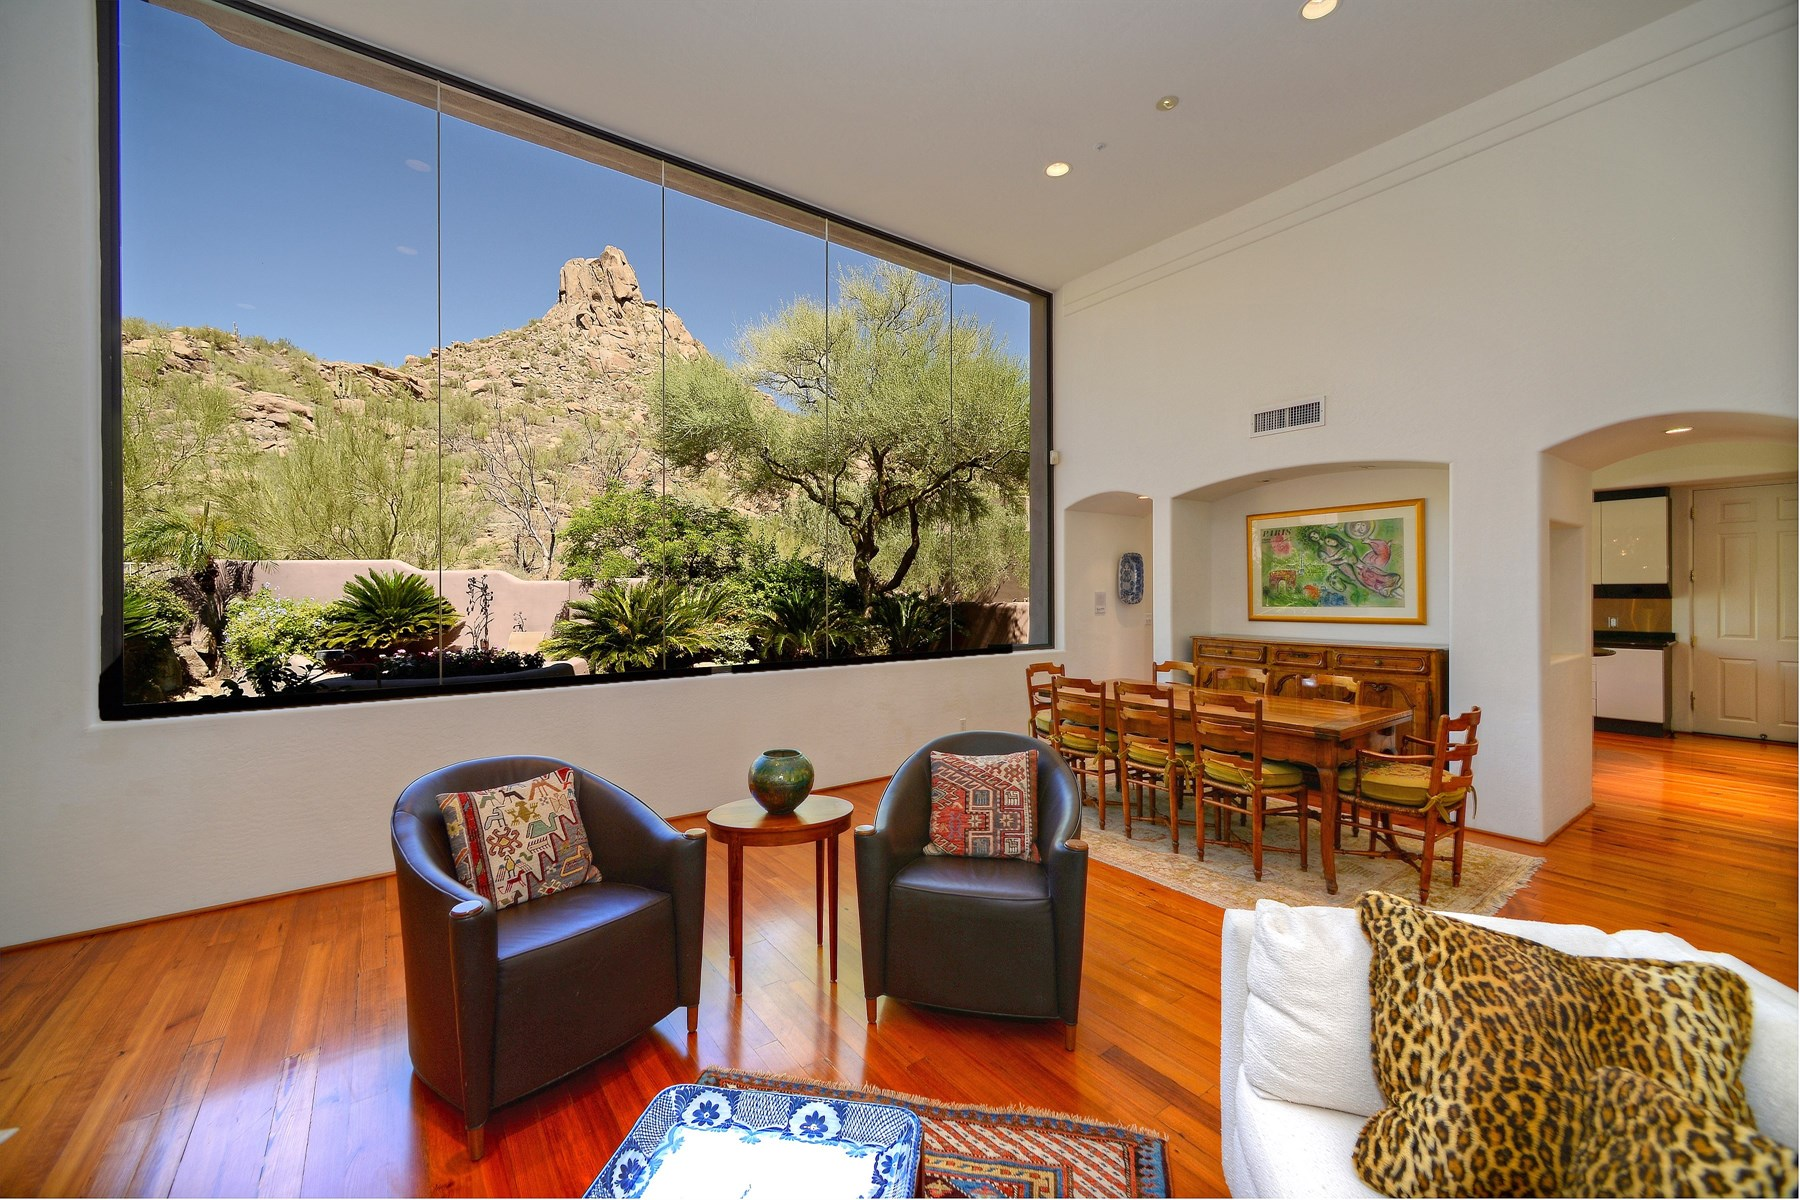 Maison unifamiliale pour l Vente à Spectacular Bob Bacon design nestled in the enclave of the Hillside Villa Estate 10040 E HAPPY VALLEY RD #1031 Scottsdale, Arizona 85255 États-Unis